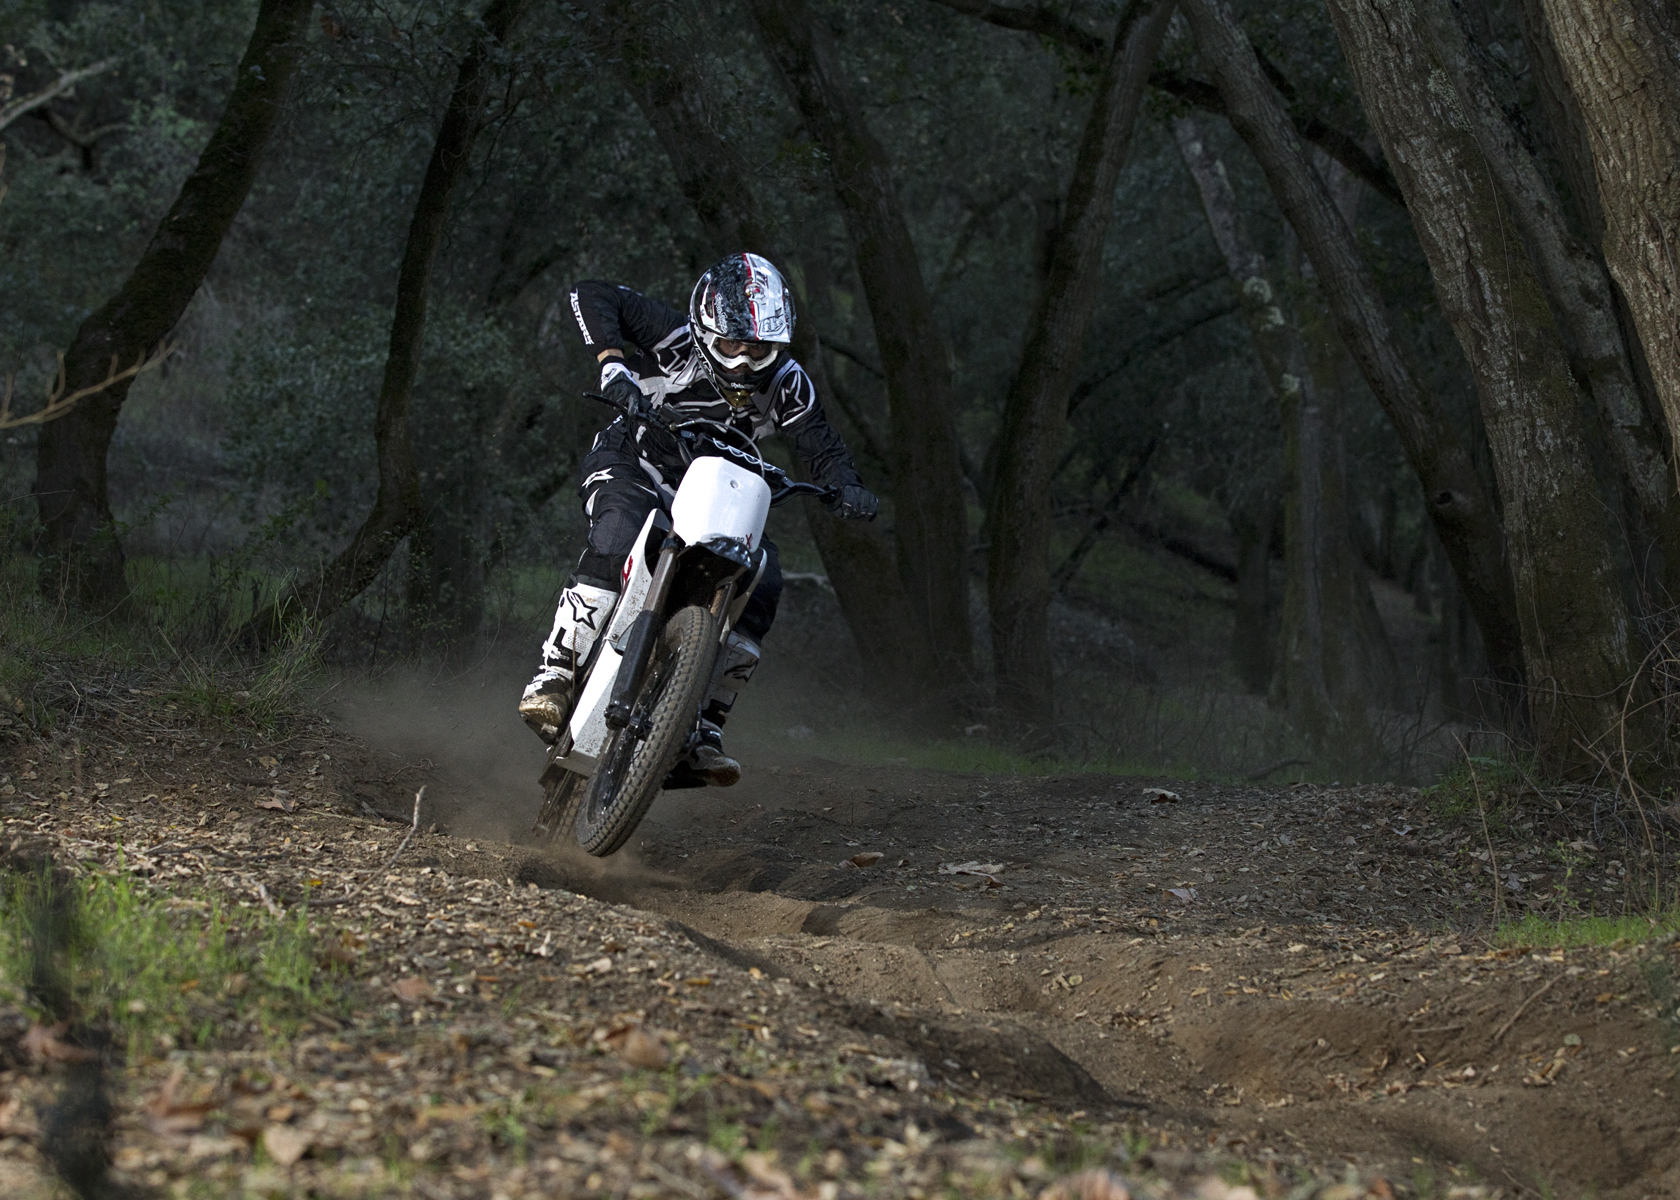 '.2011 Zero X Electric Motorcycle: Speeding through Ruts.'